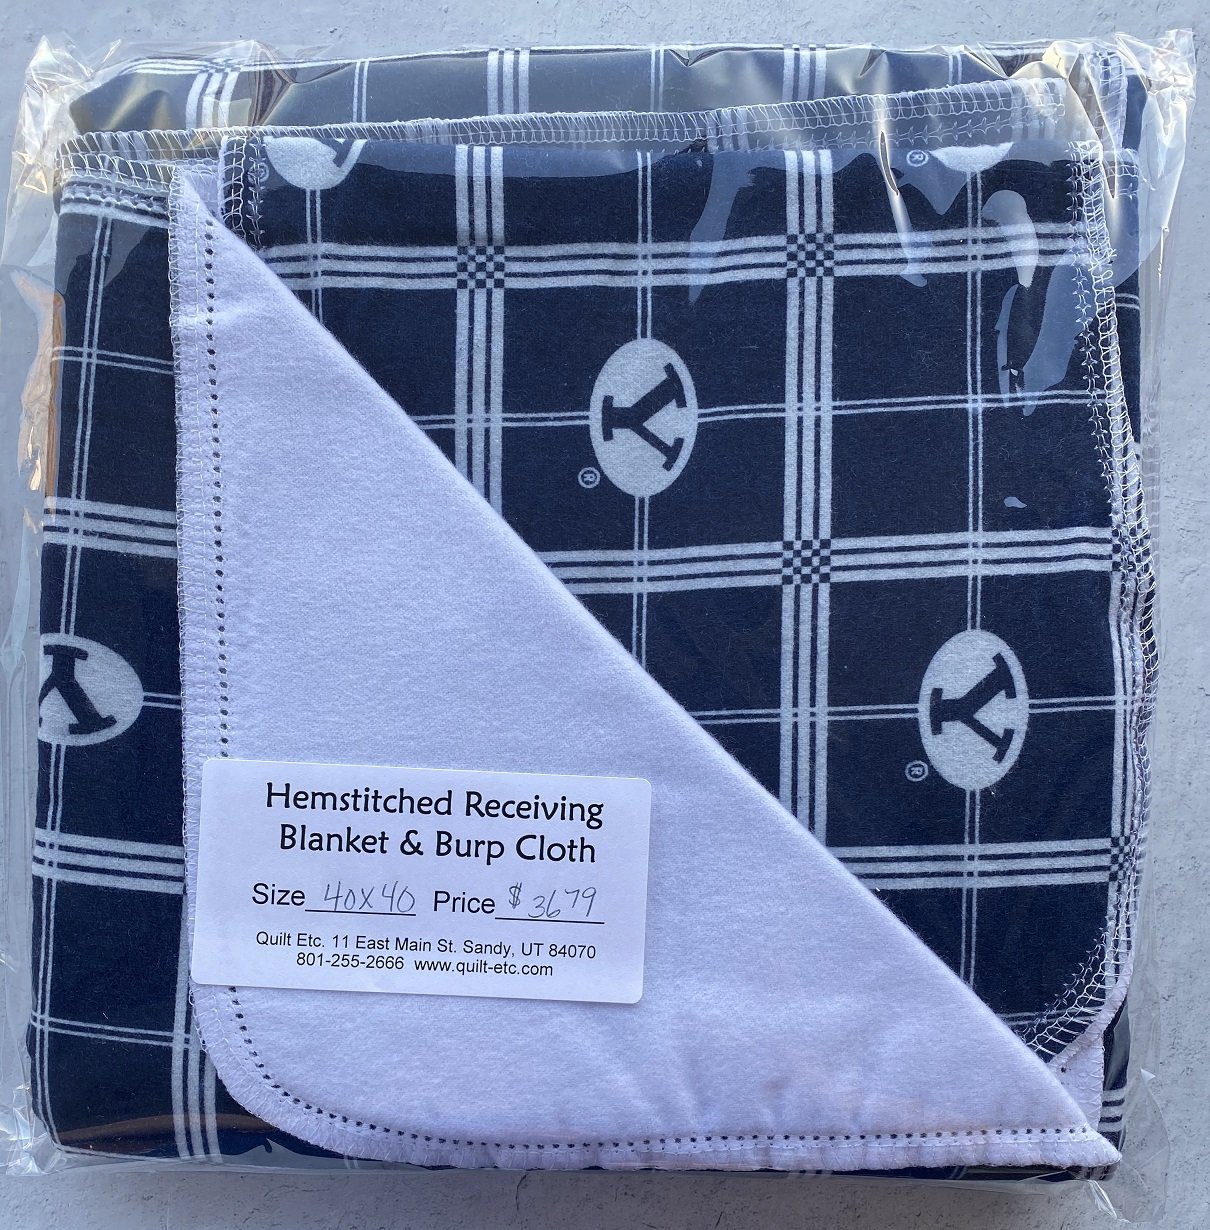 Hemstitched Receiving Blanket & Burp Cloth 28